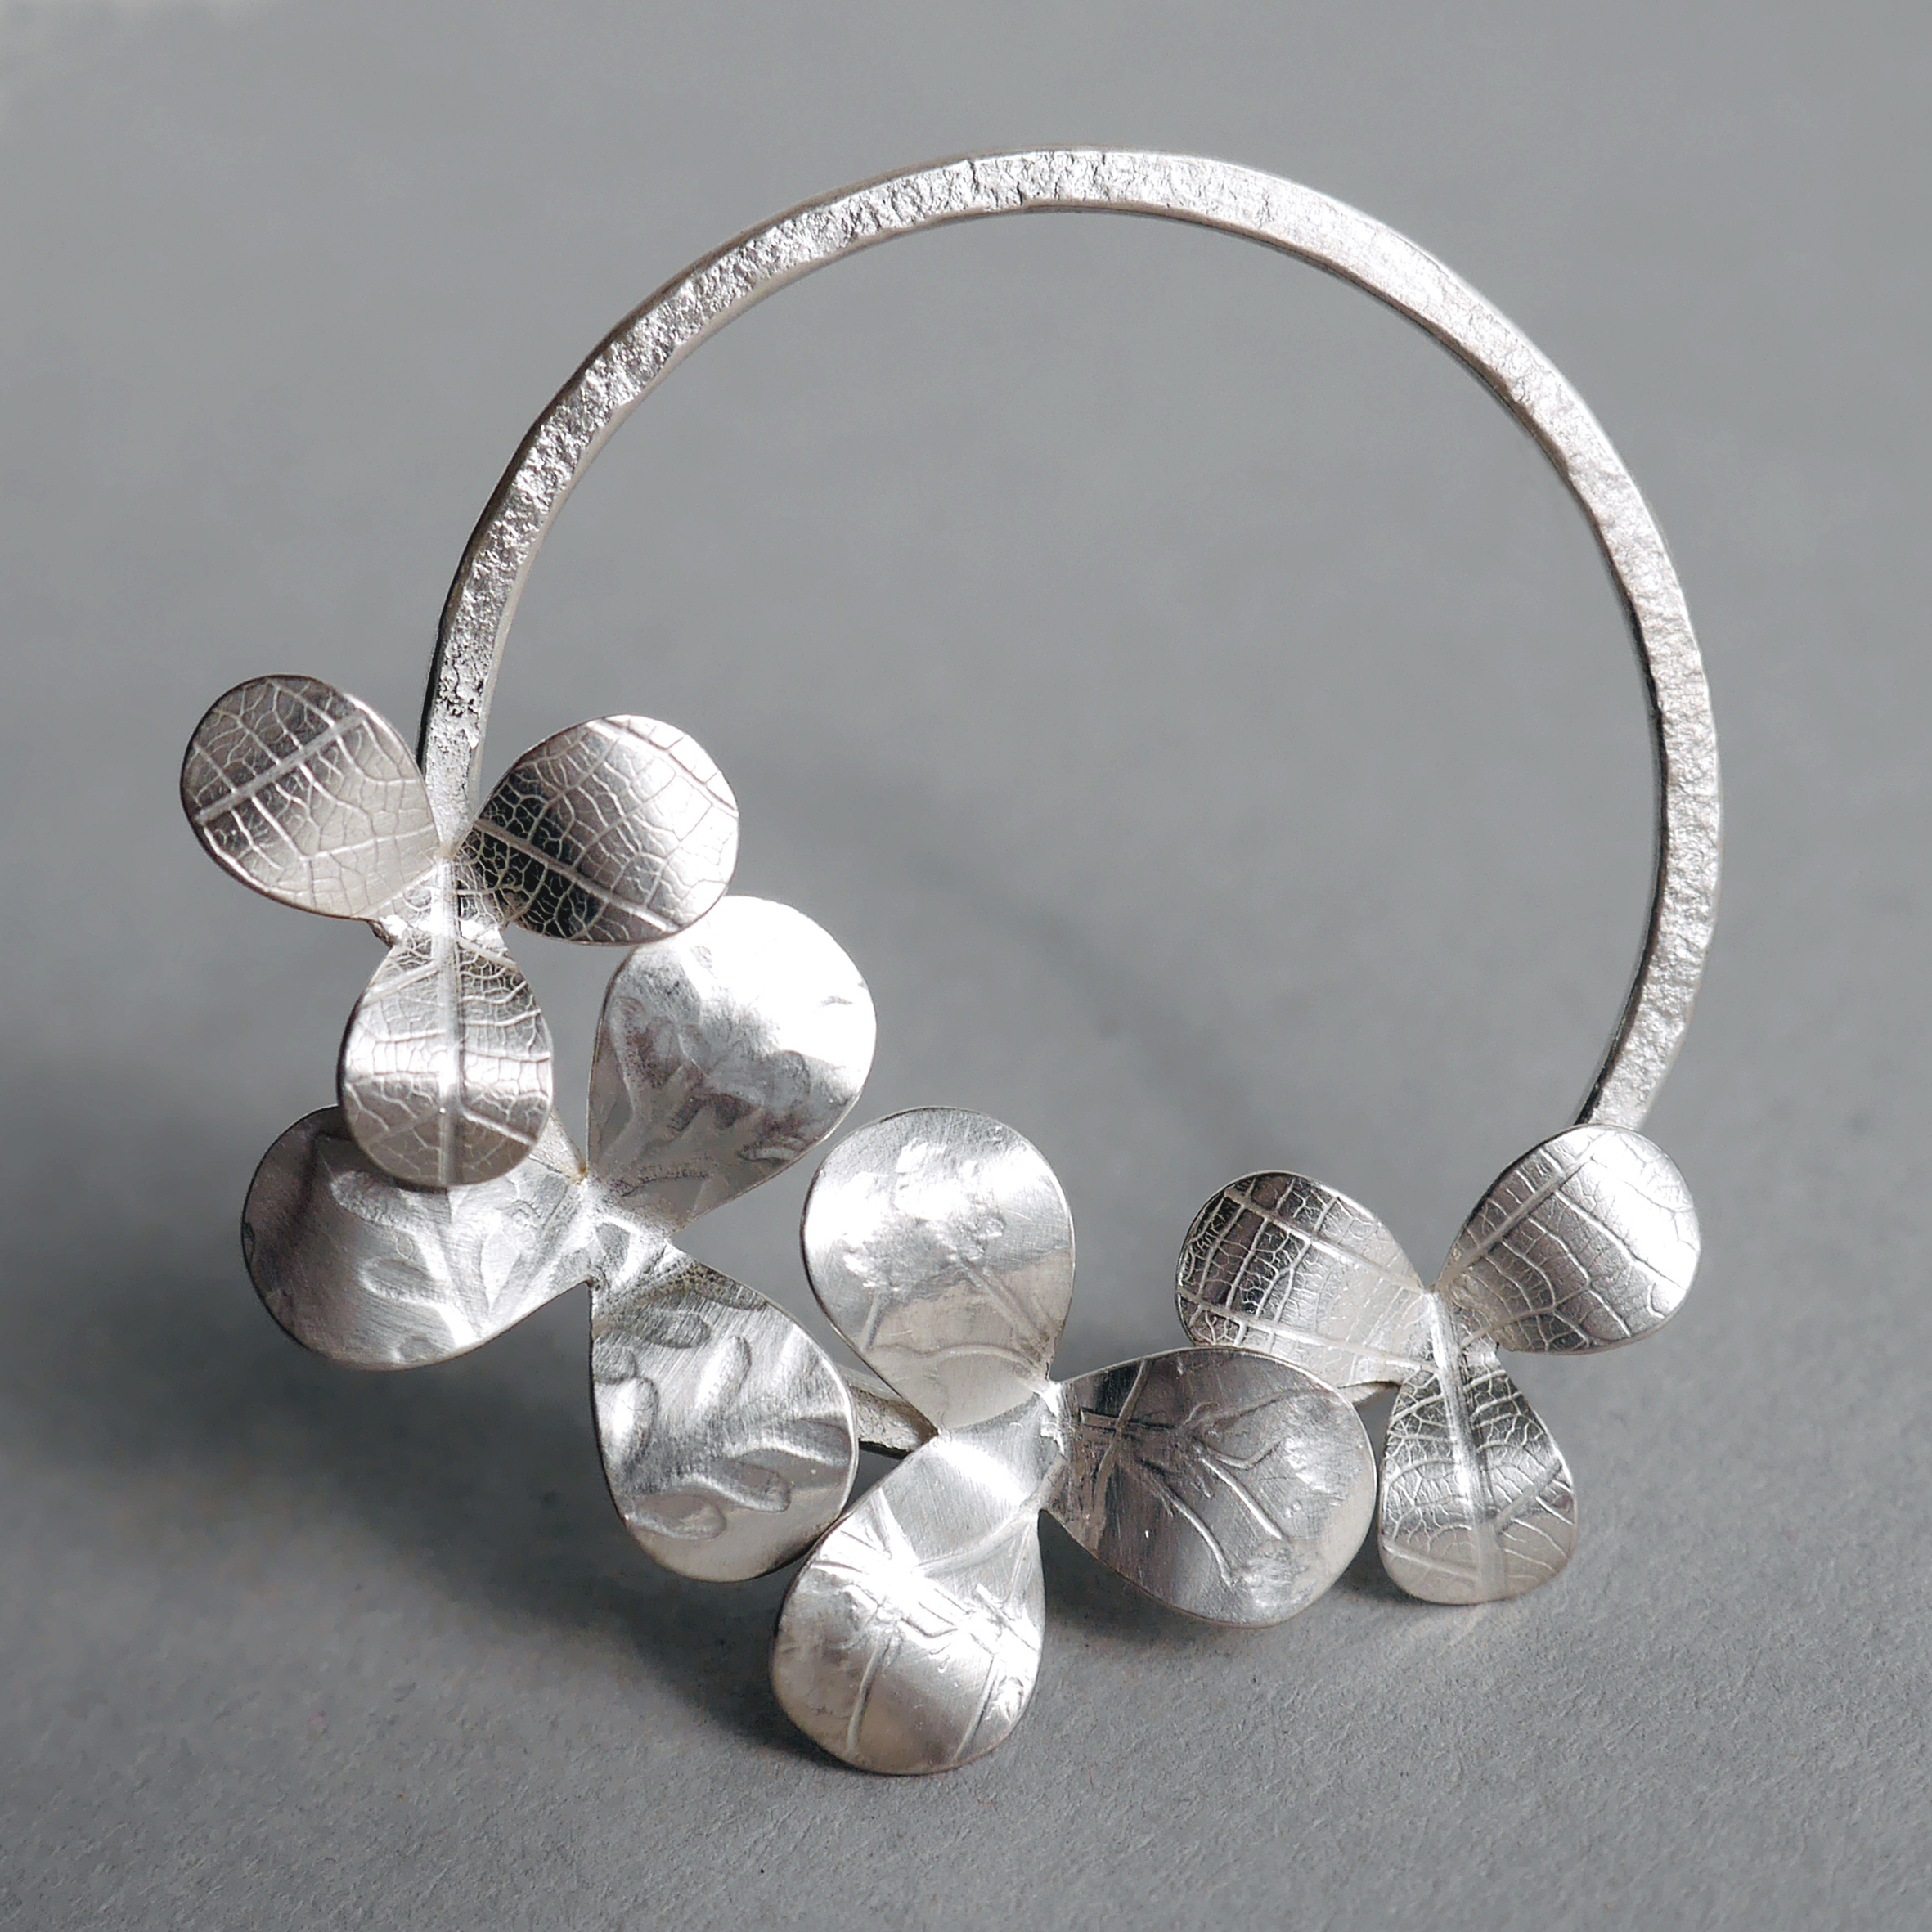 ac argent contemporary b cox collection amanda bi comissions bespoke jewellery oak